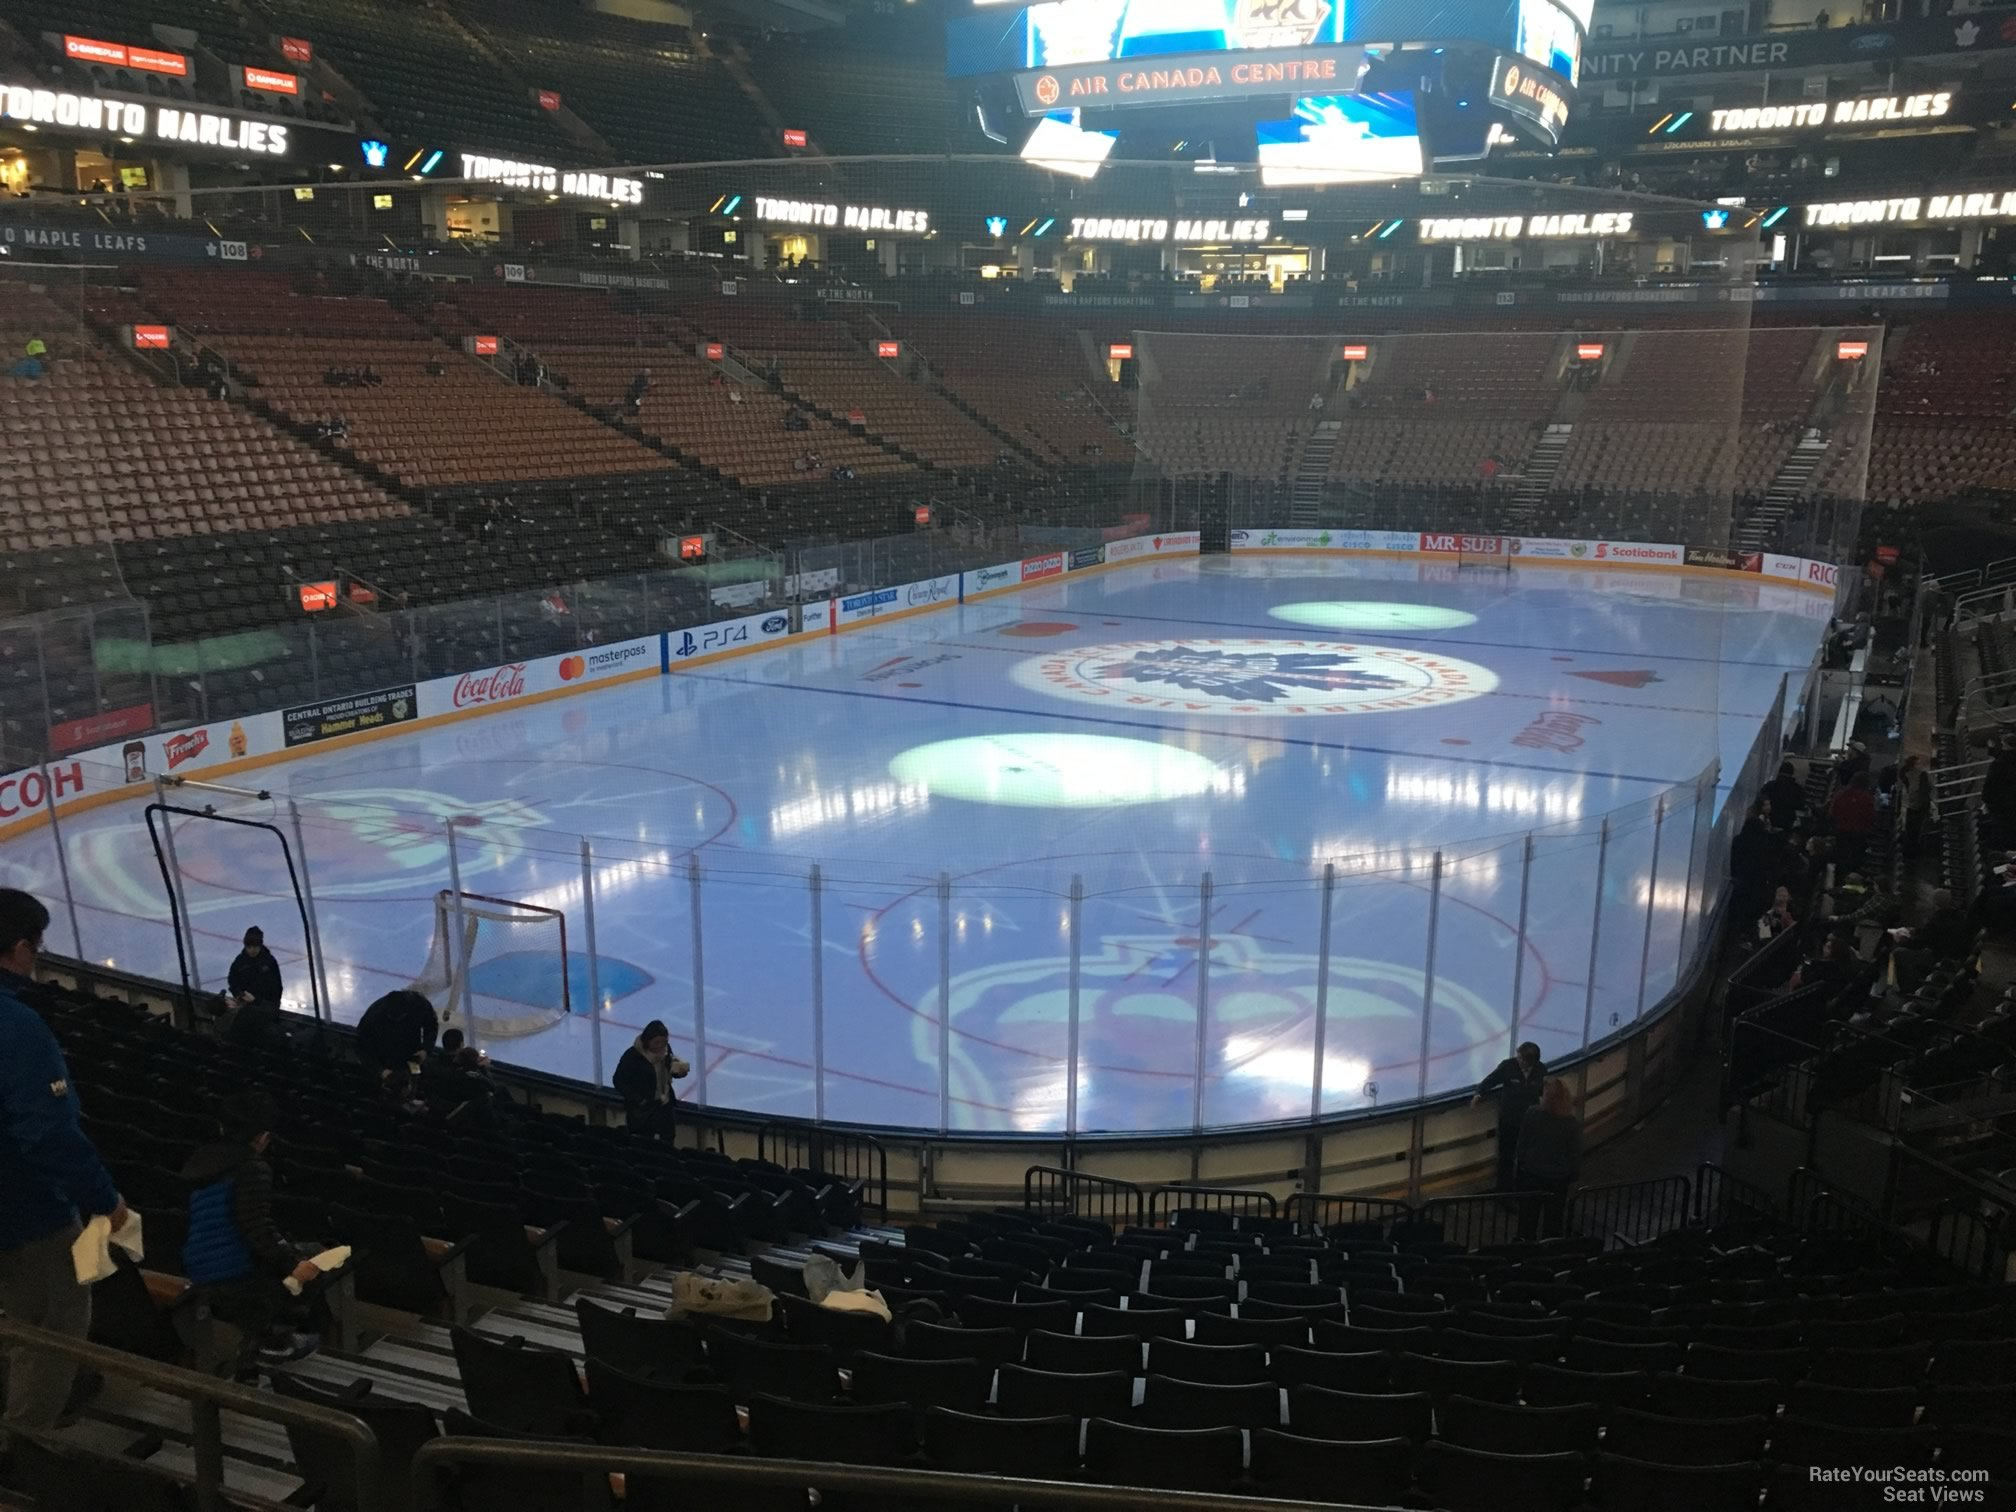 Toronto Maple Leafs Seat View for Scotiabank Arena Section 101, Row 20